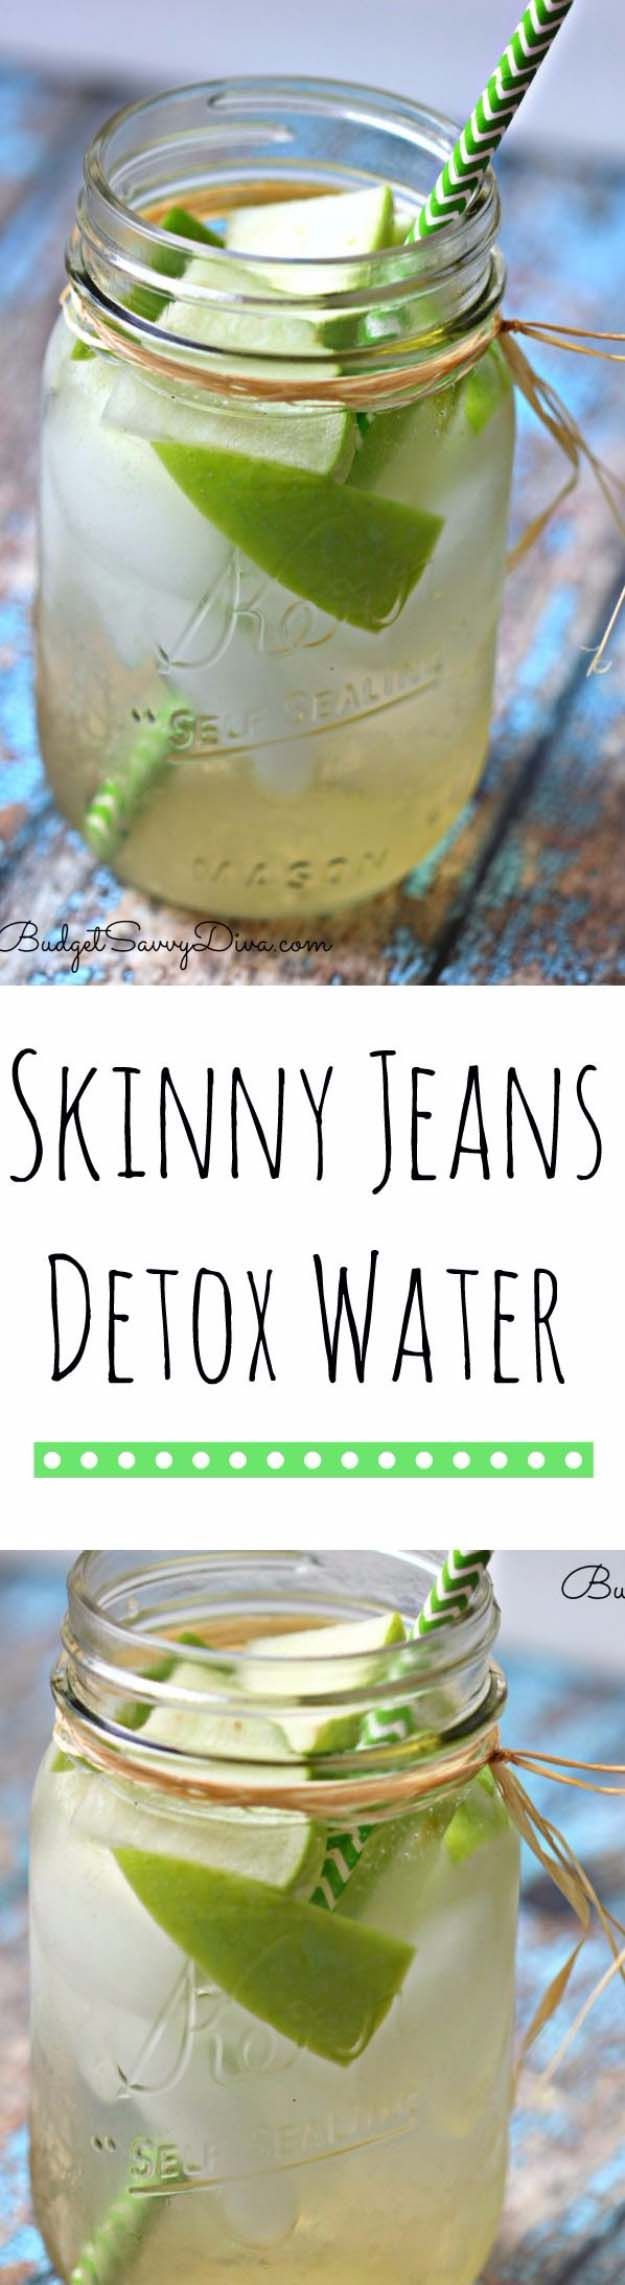 31 Detox Water Recipes for Drinks To Cleanse Skin and Body.  Easy to Make Waters and Tea Promote Health, Diet and Support Weight loss | Skinny Jeans Detox Water Recipe To Lose Weight http://diyjoy.com/diy-detox-water-recipes